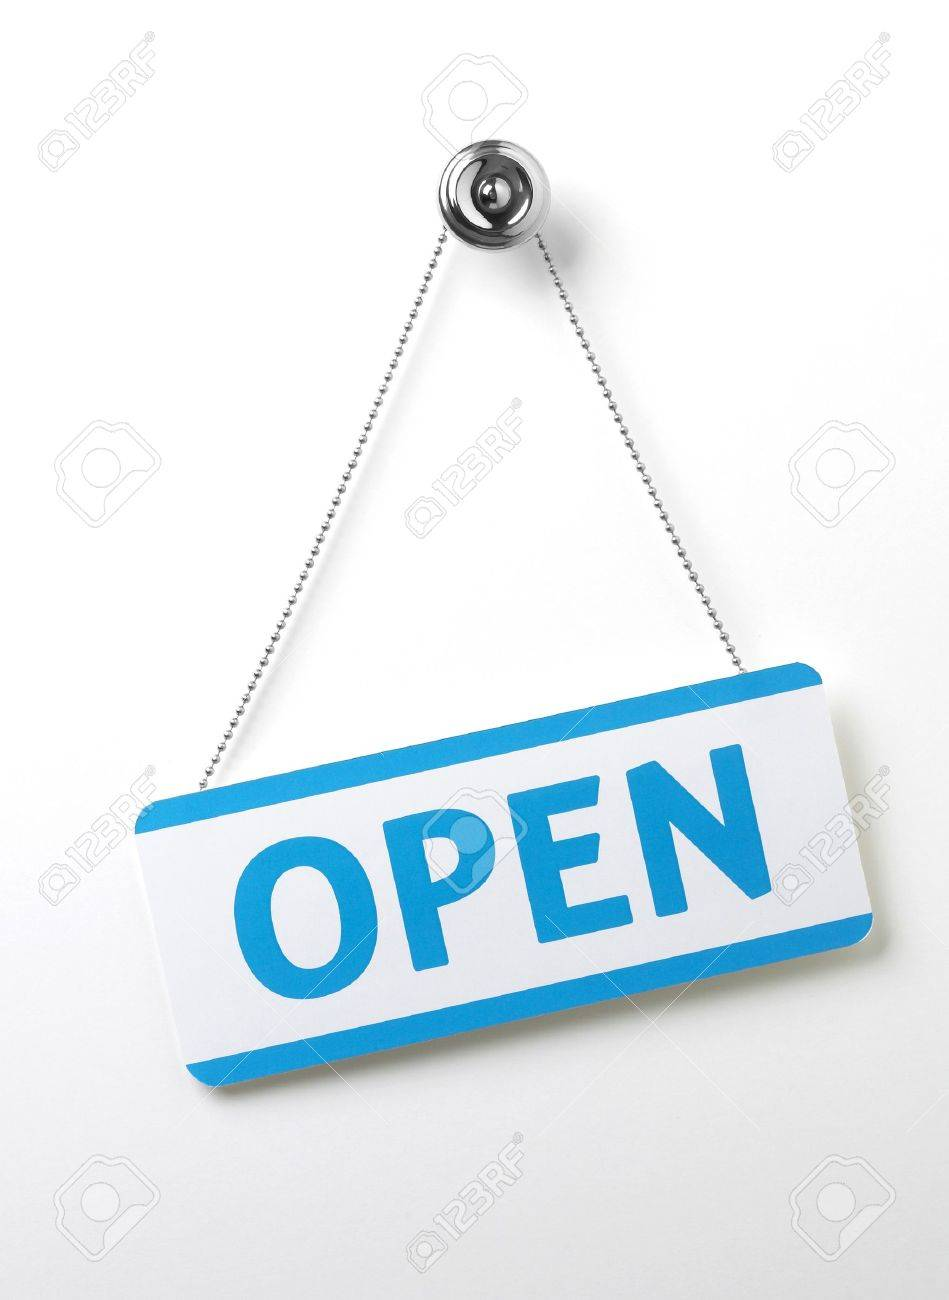 a process blue angled open door sign on a silver chain on a white background Stock Photo - 7924454